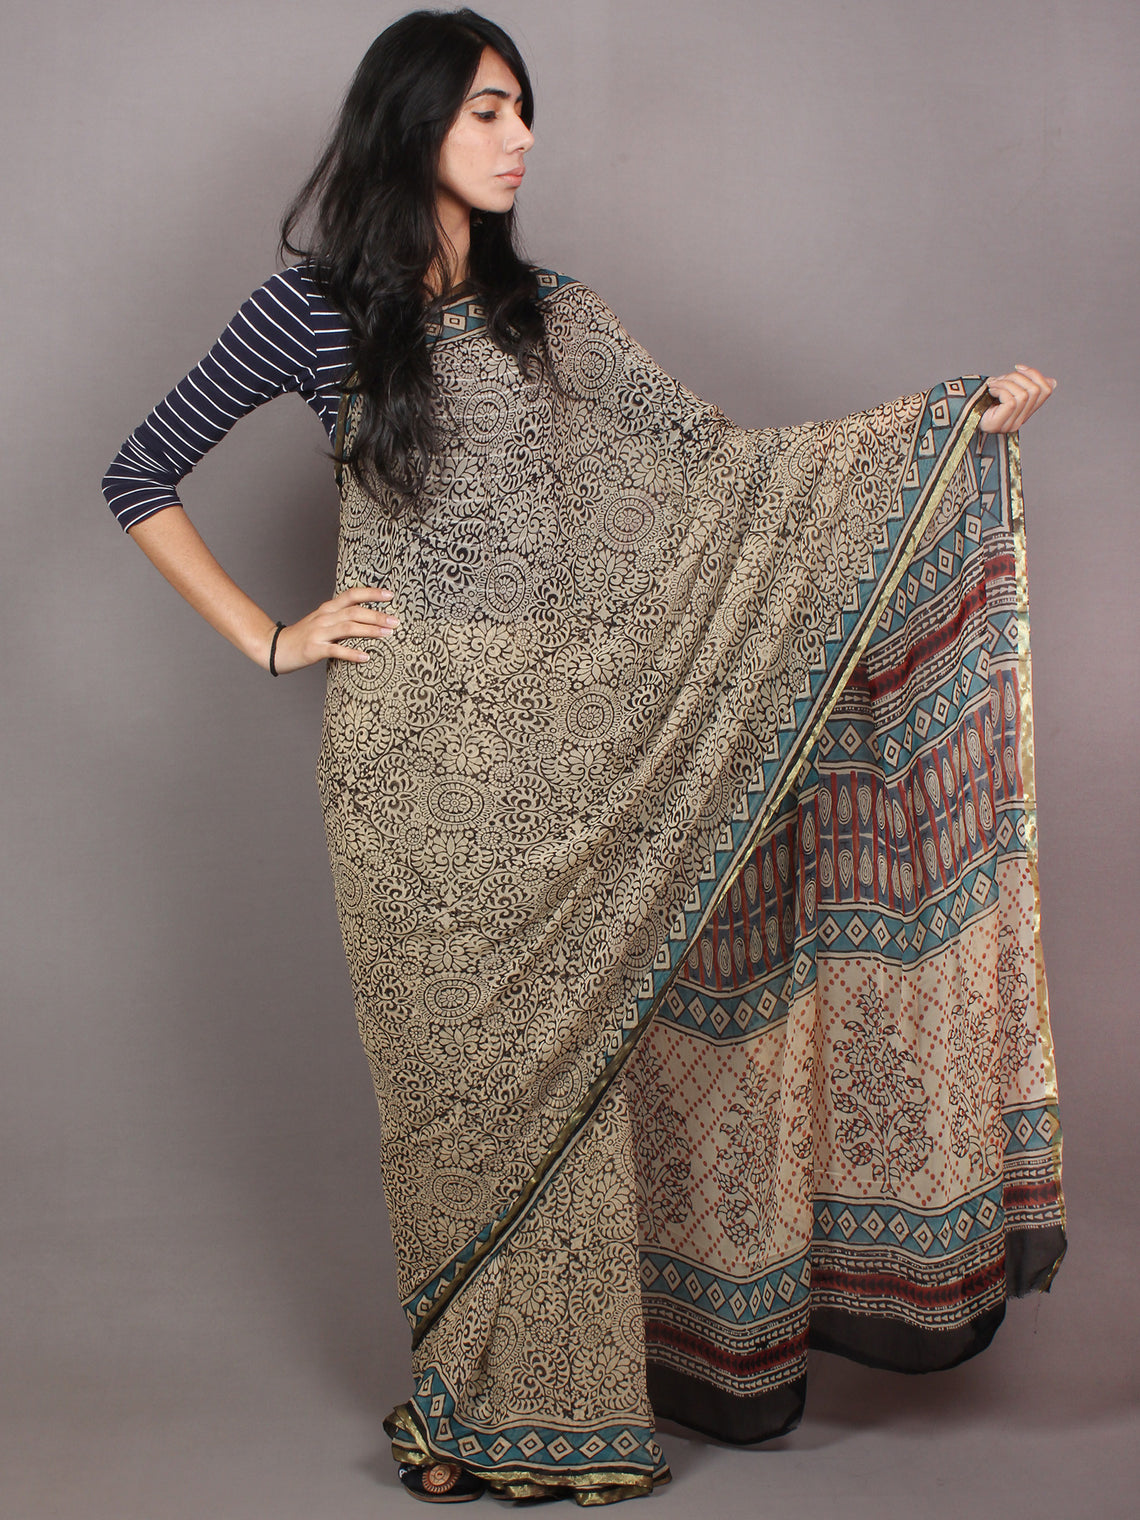 Ivory Black Blue Hand Block Printed in Natural Colors Chiffon Saree - S03170788